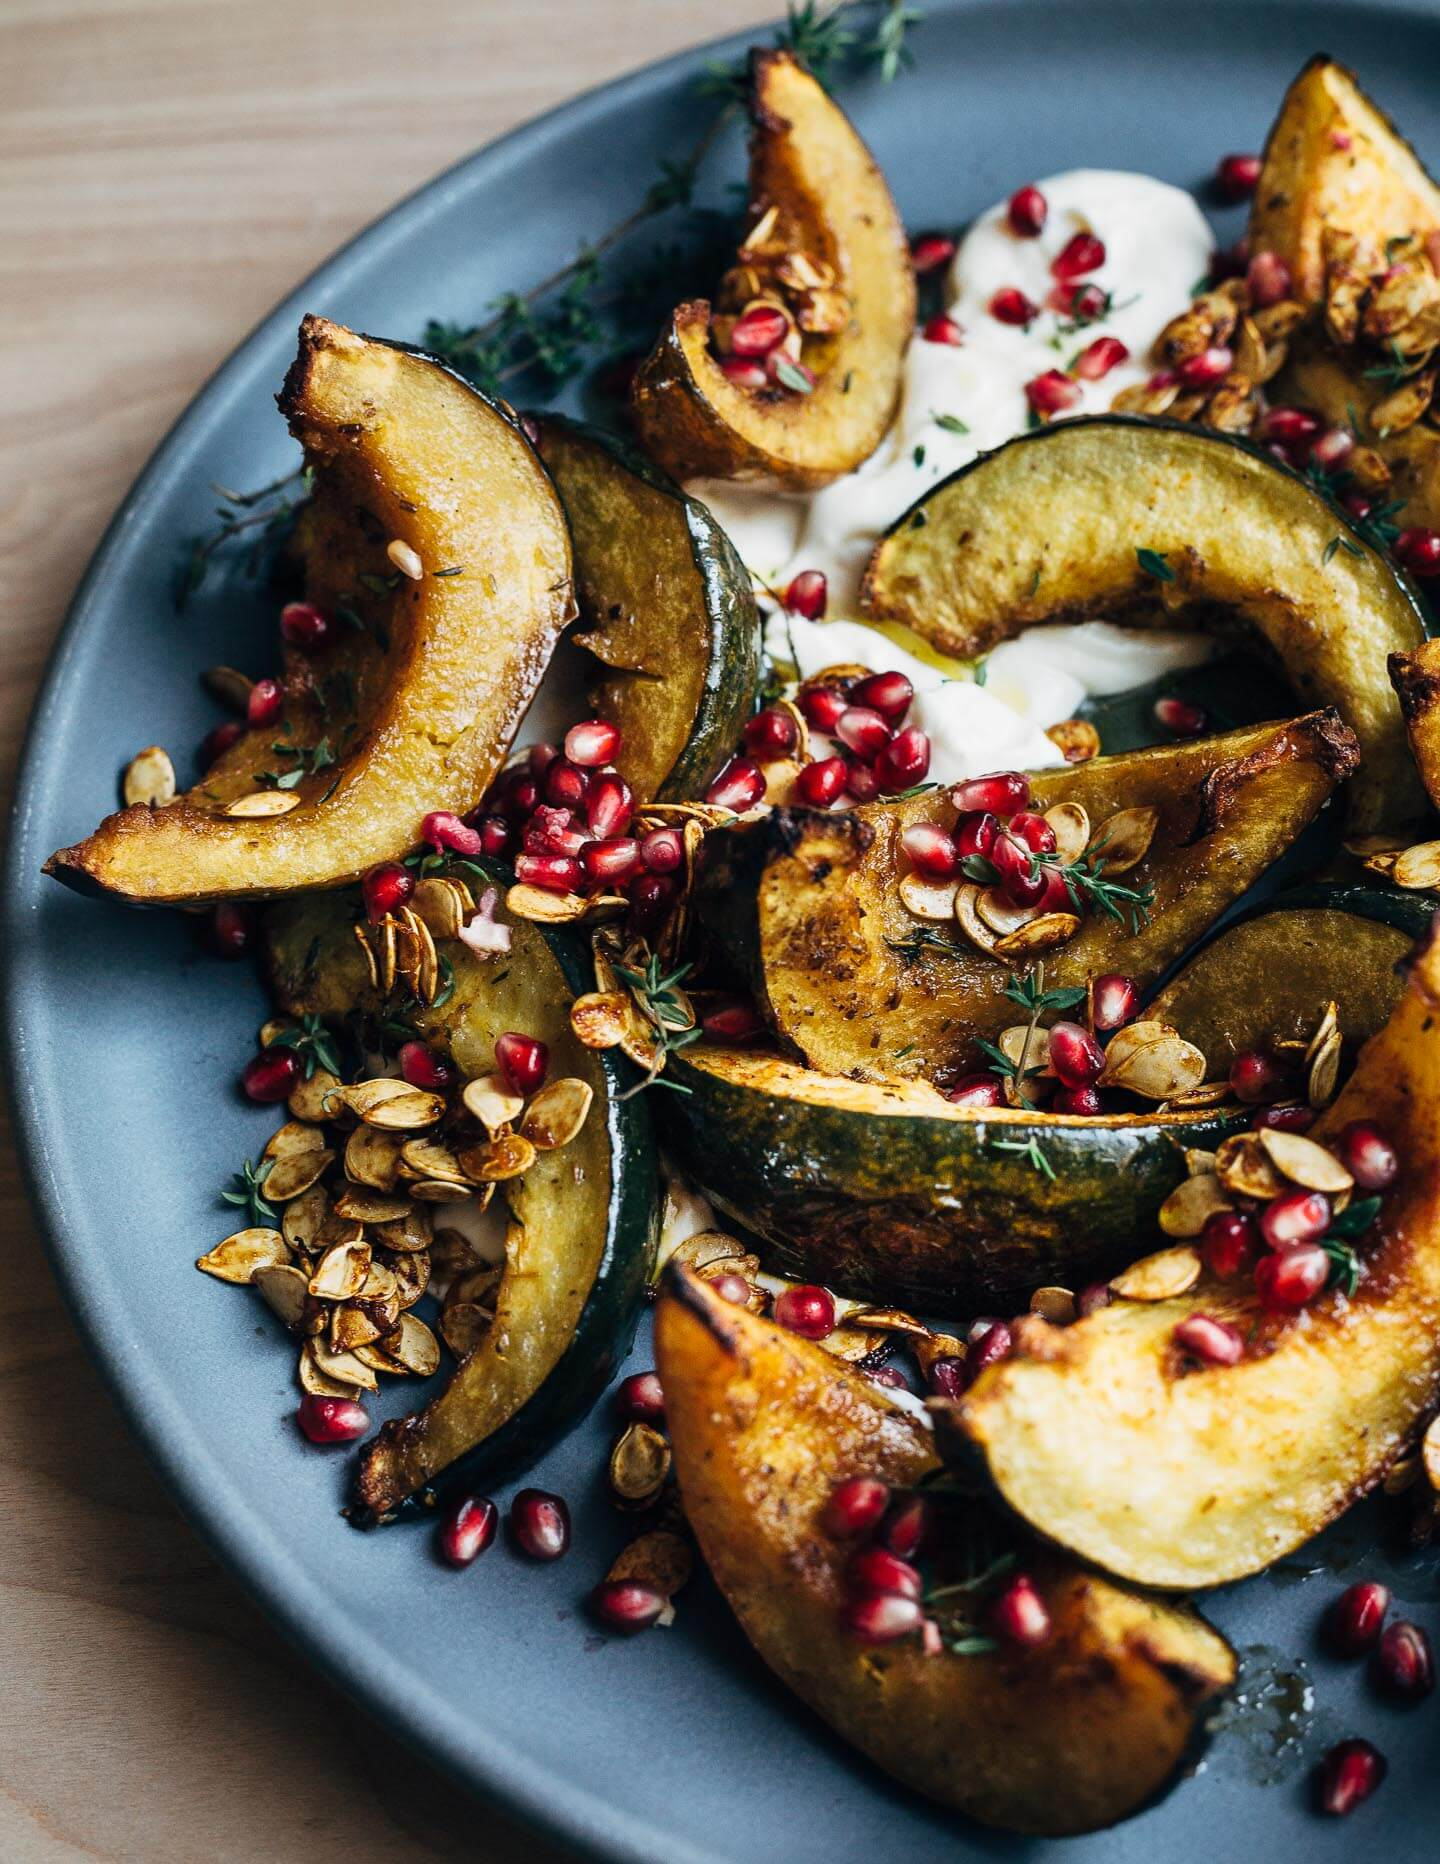 Brown Sugar Roasted Acorn Squash Wedges Brooklyn Supper